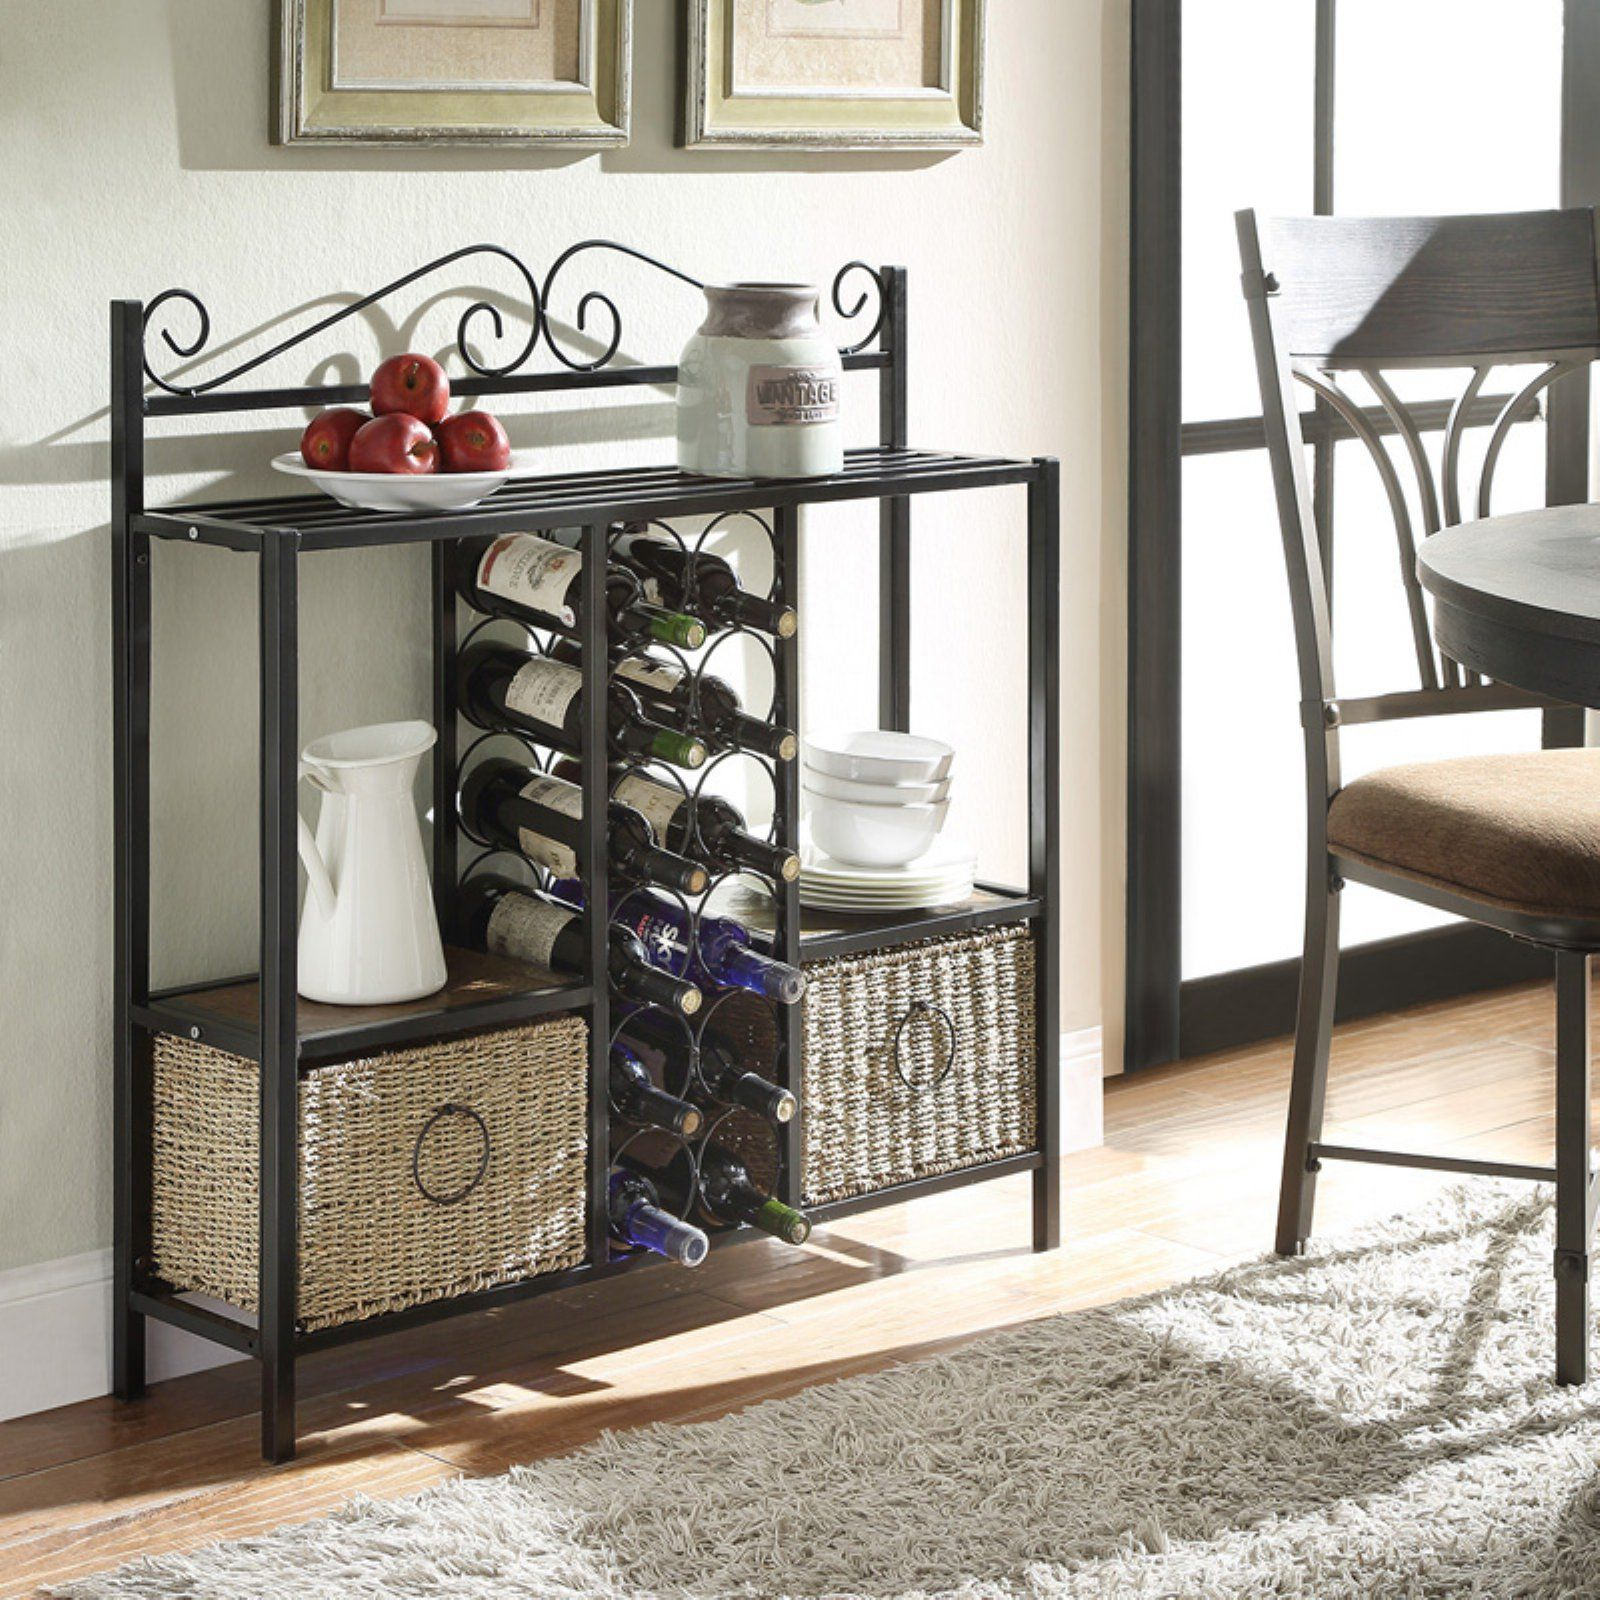 4d Concepts Windsor Storage And Wine Rack With 2 Baskets In 2020